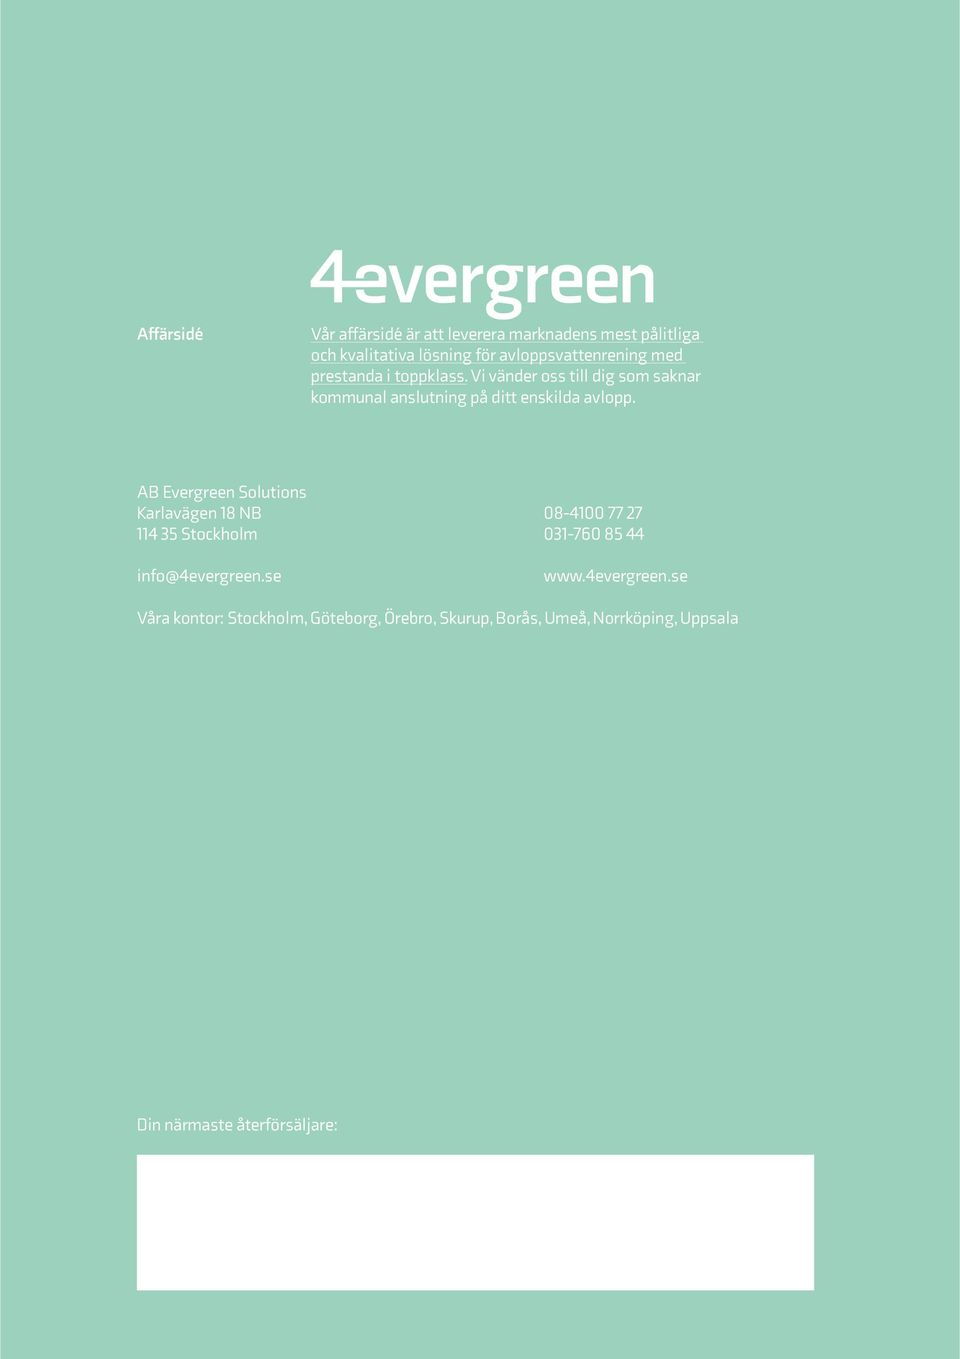 AB Evergreen Solutions Karlavägen 18 NB 08-4100 77 27 114 35 Stockholm 031-760 85 44 info@4evergreen.se www.